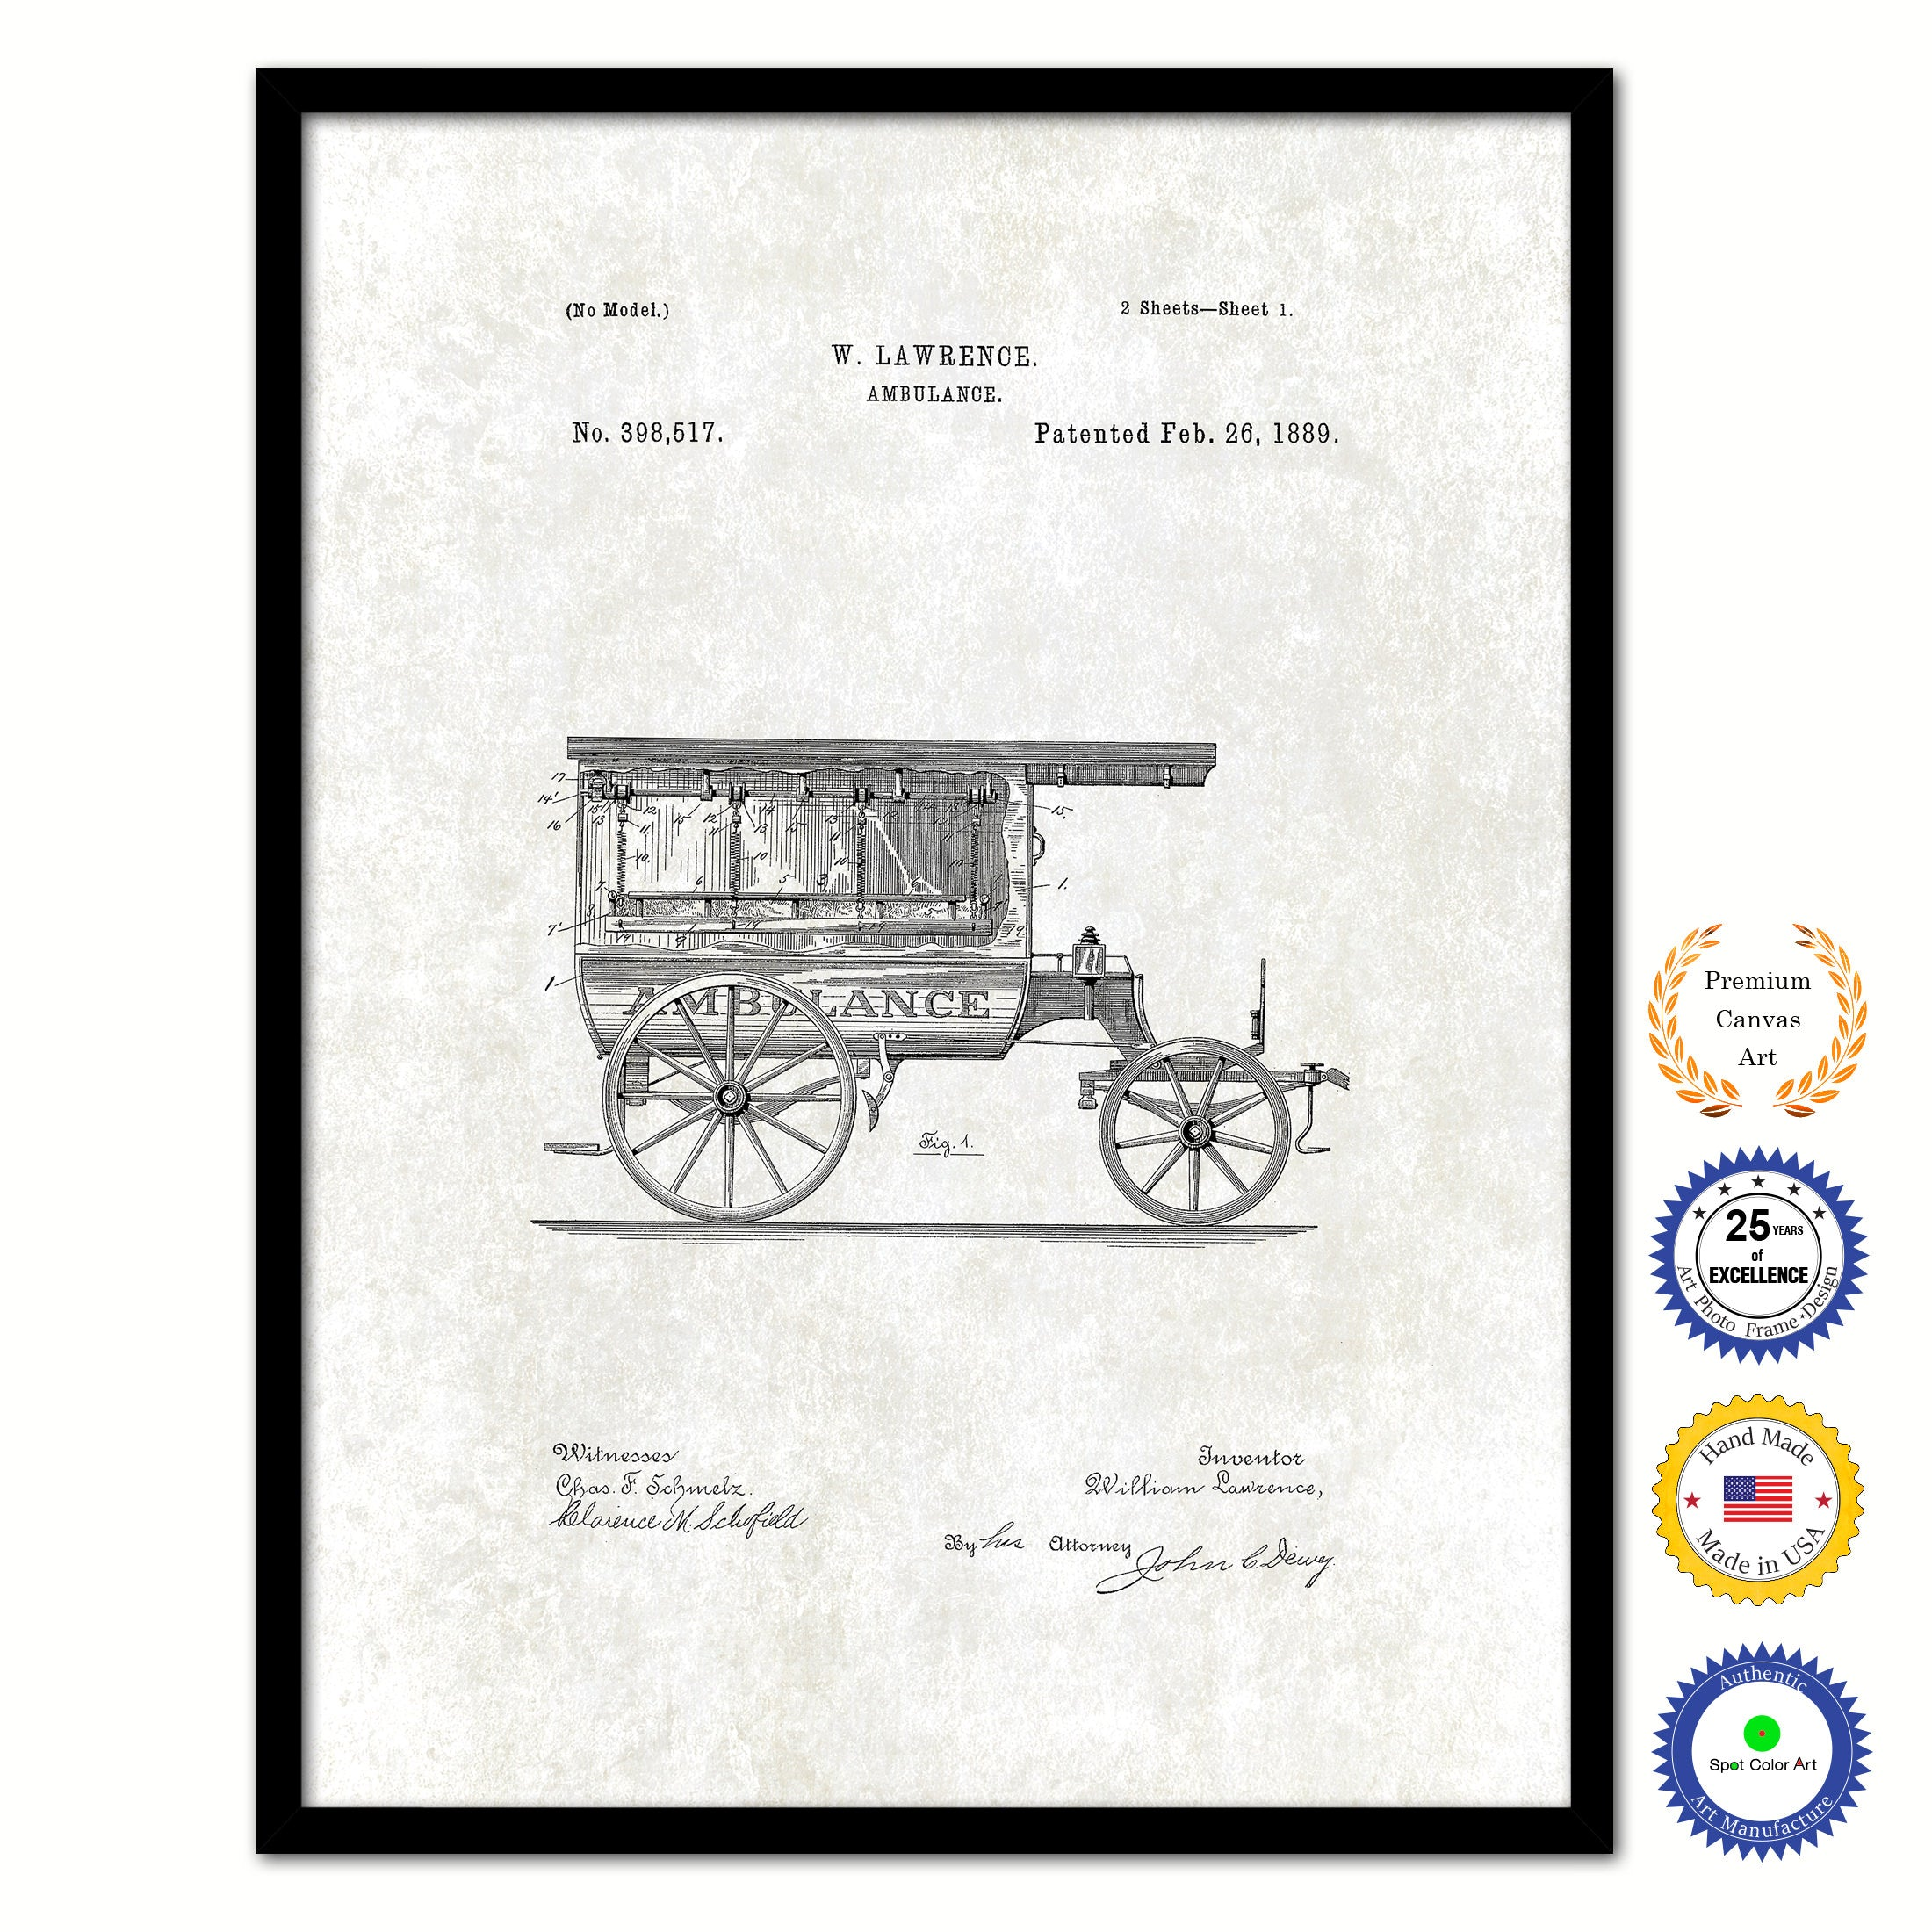 1889 Doctor Ambulance Vintage Patent Artwork Black Framed Canvas Print Home Office Decor Great for Doctor Paramedic Surgeon Hospital Medical Student